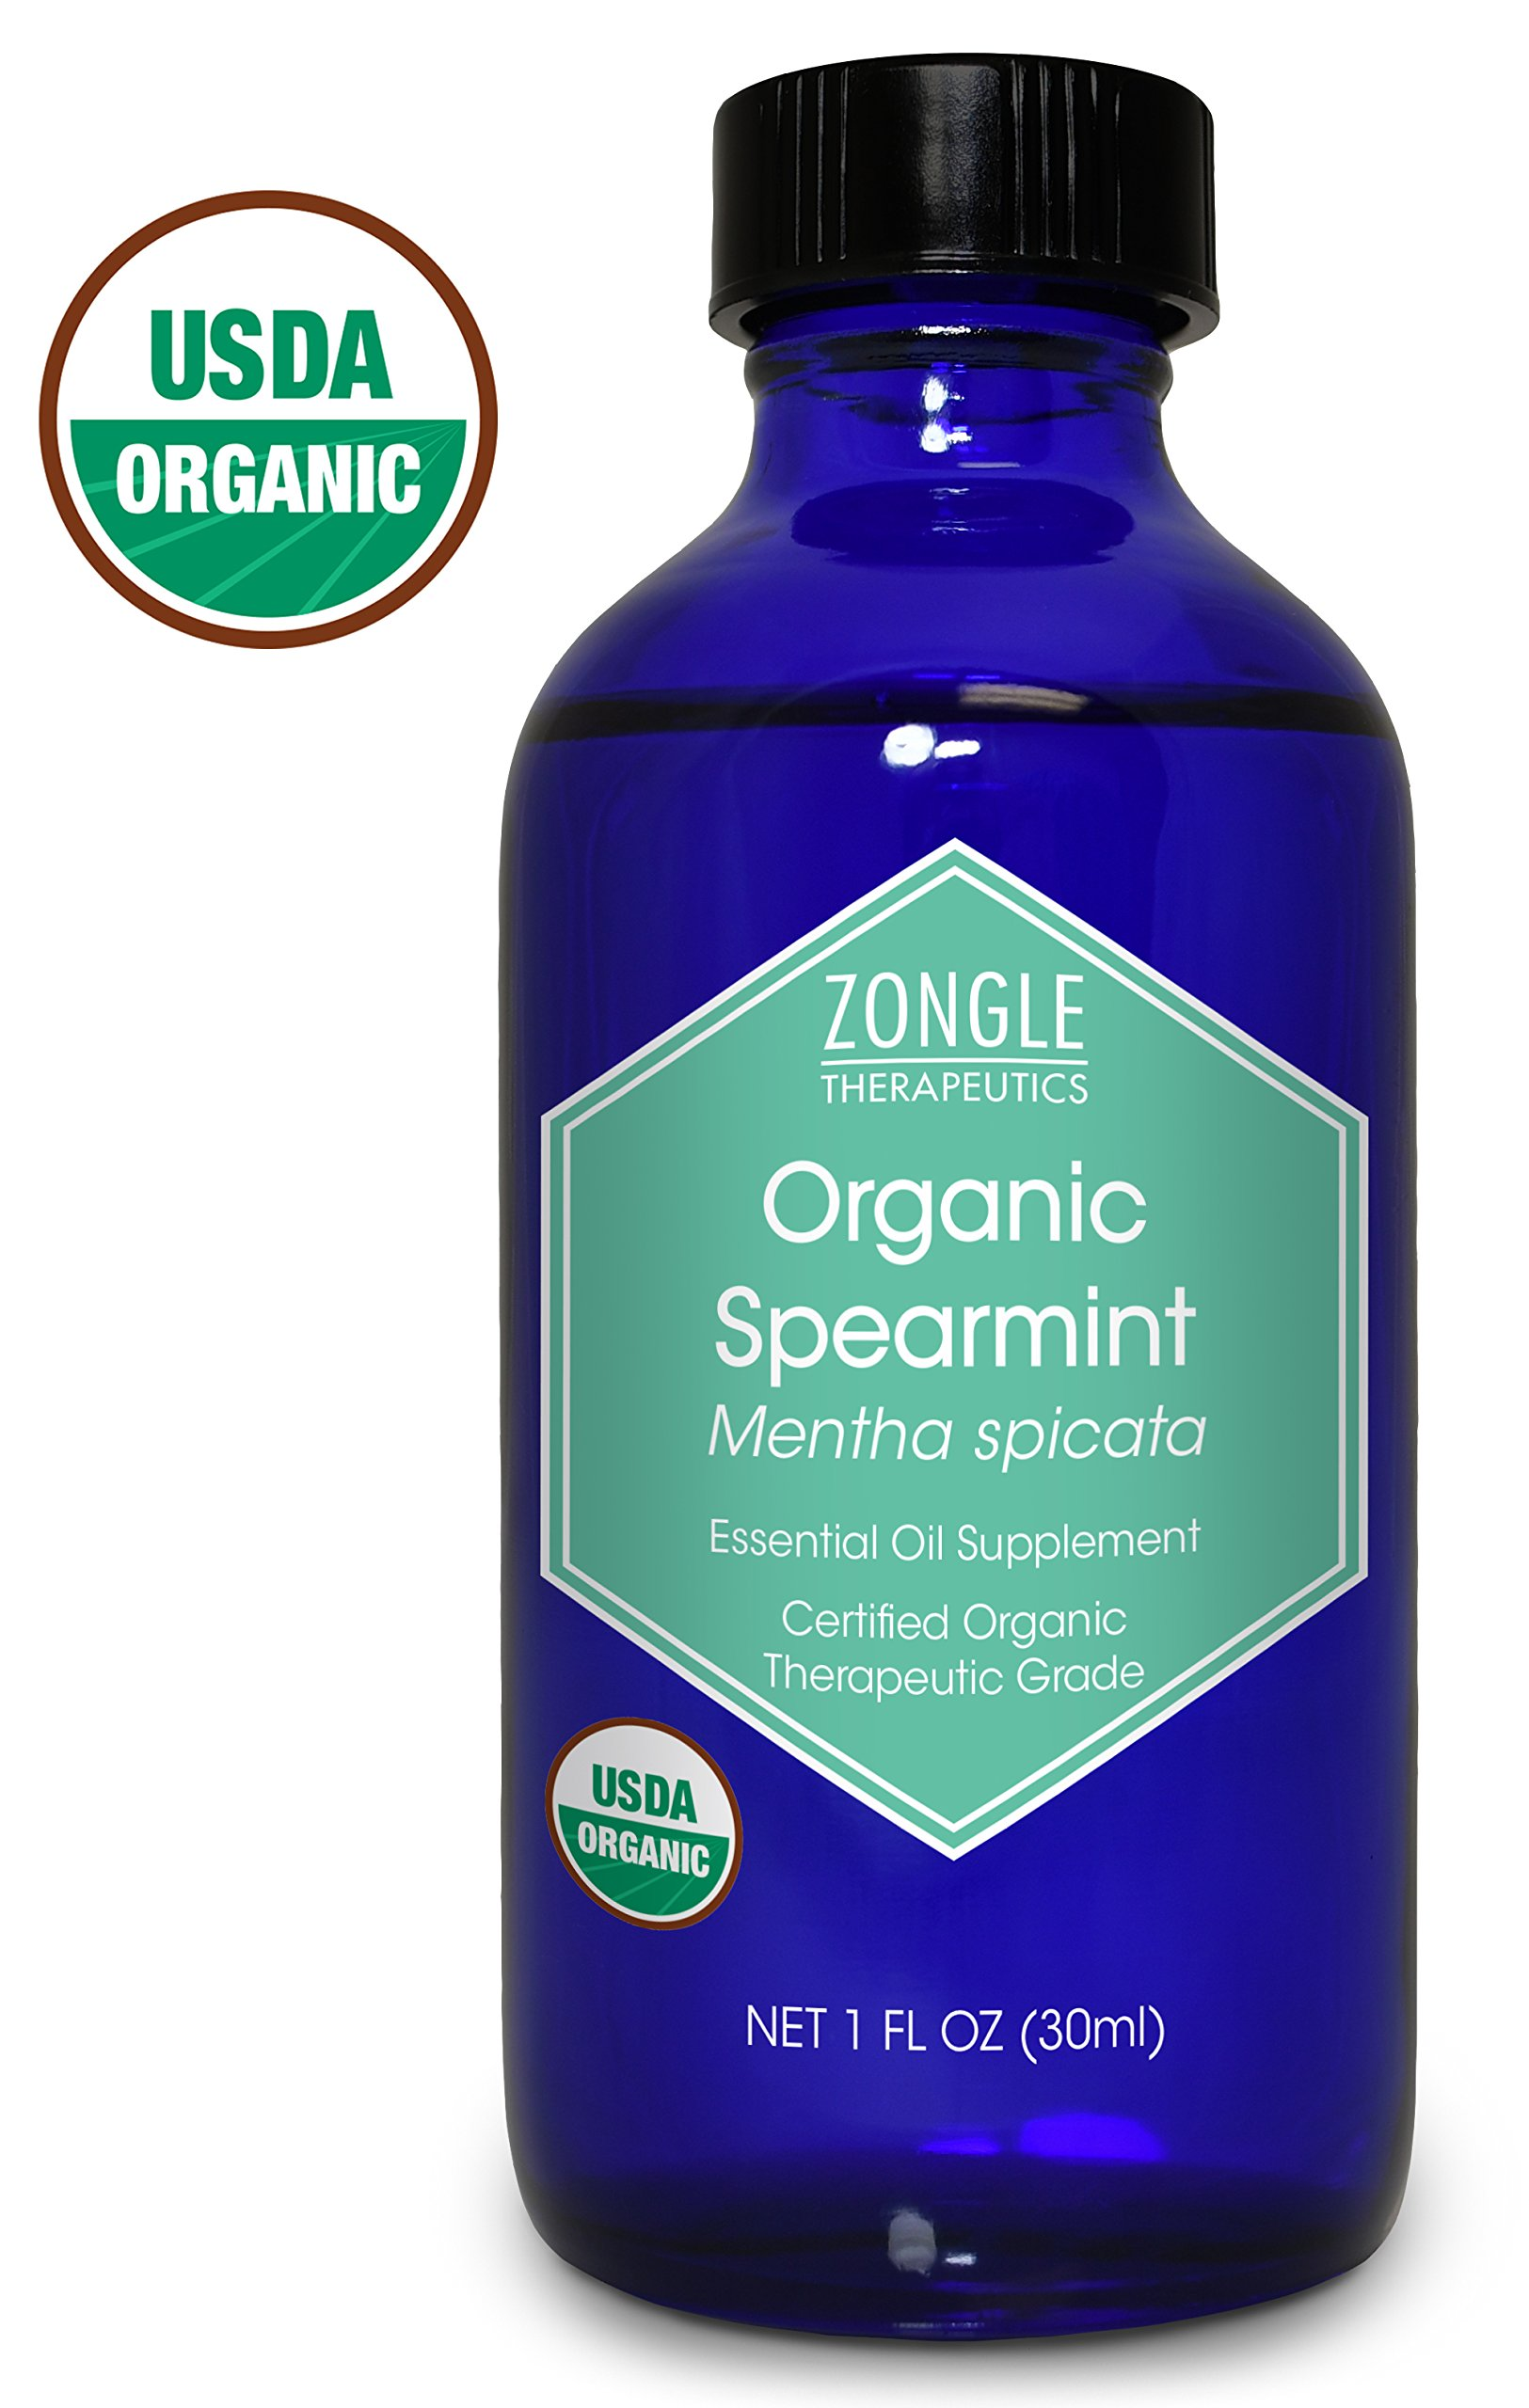 Zongle USDA Certified Organic Spearmint Essential Oil, Safe to Ingest, Mentha Spicata, 1 oz